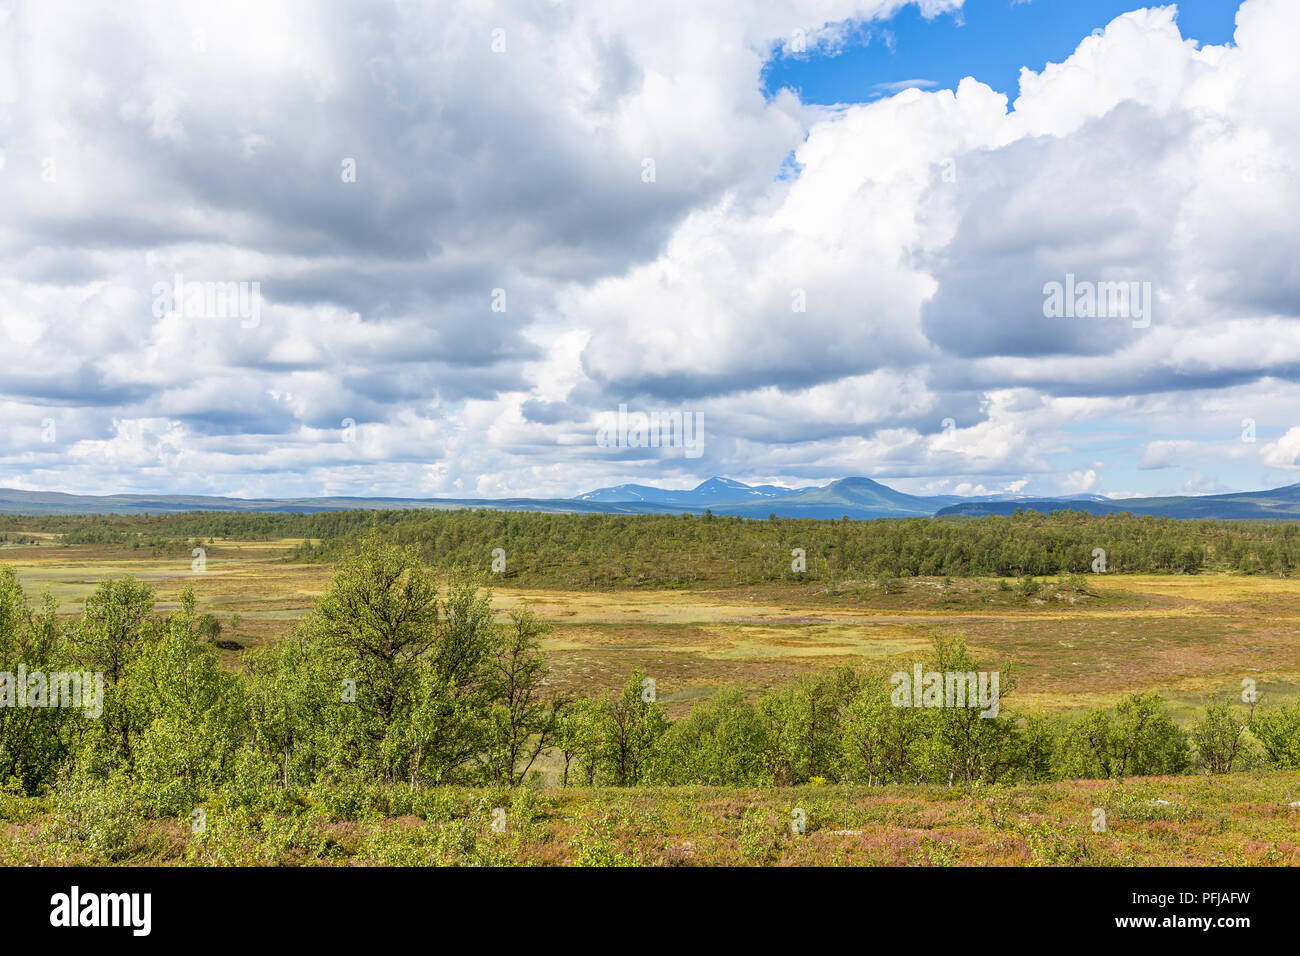 High country moorland plateau in the wilderness with mountains in the backgrounds - Stock Image